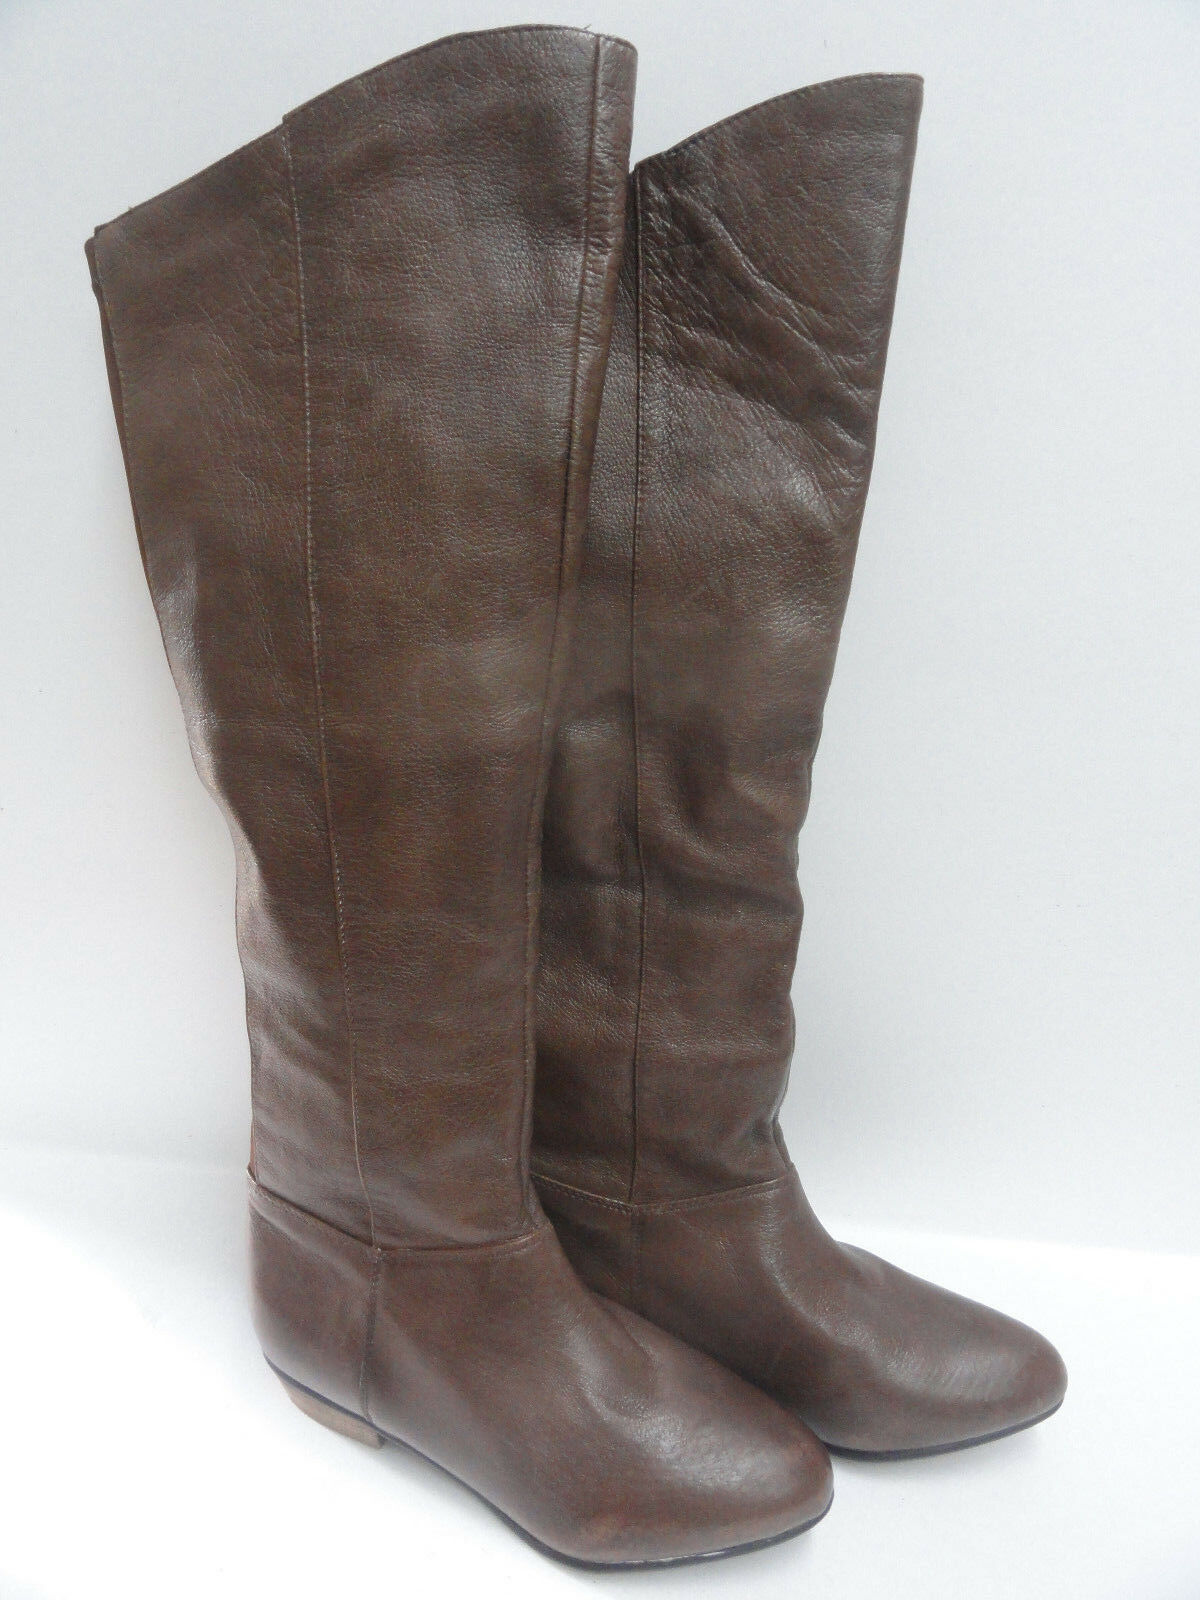 Steve Maddem Brown Leather Boots Size 5